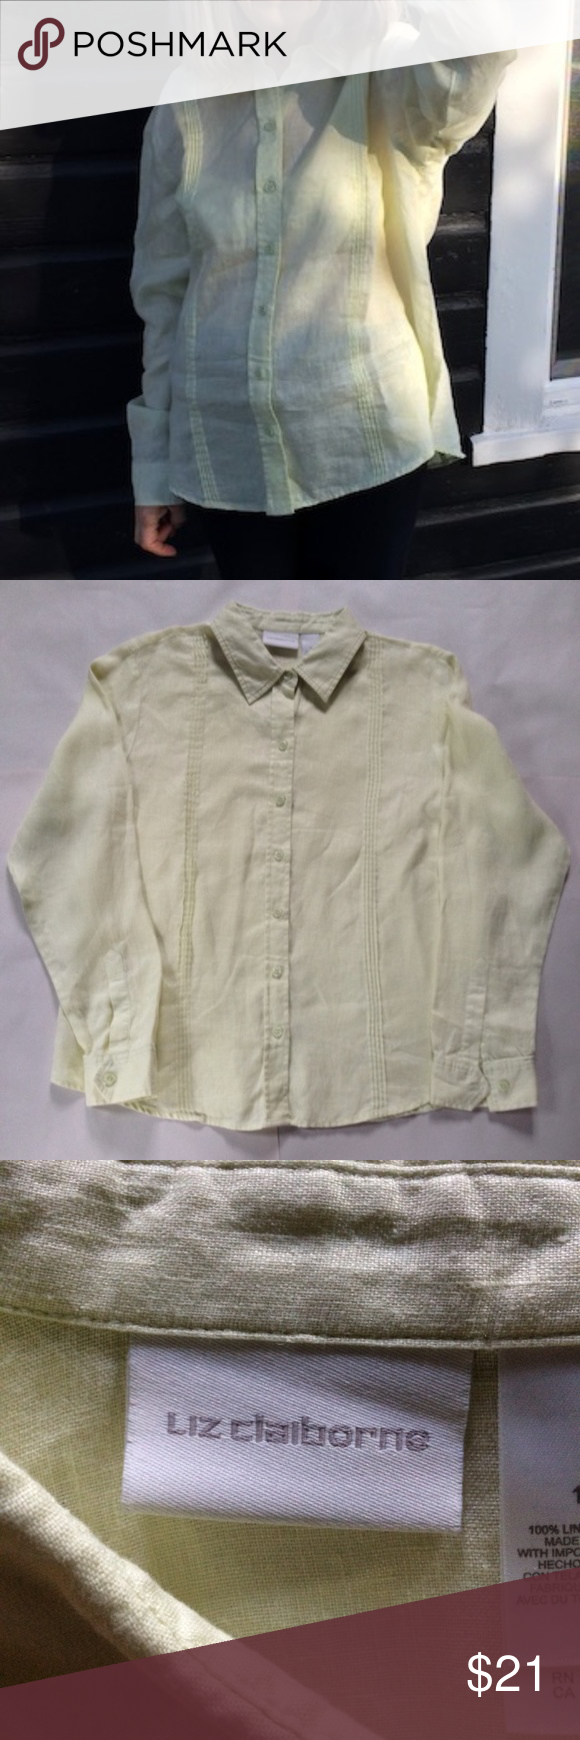 ee7ce1ac443 Liz Claiborne Linen Shirt – Rockwall Auction